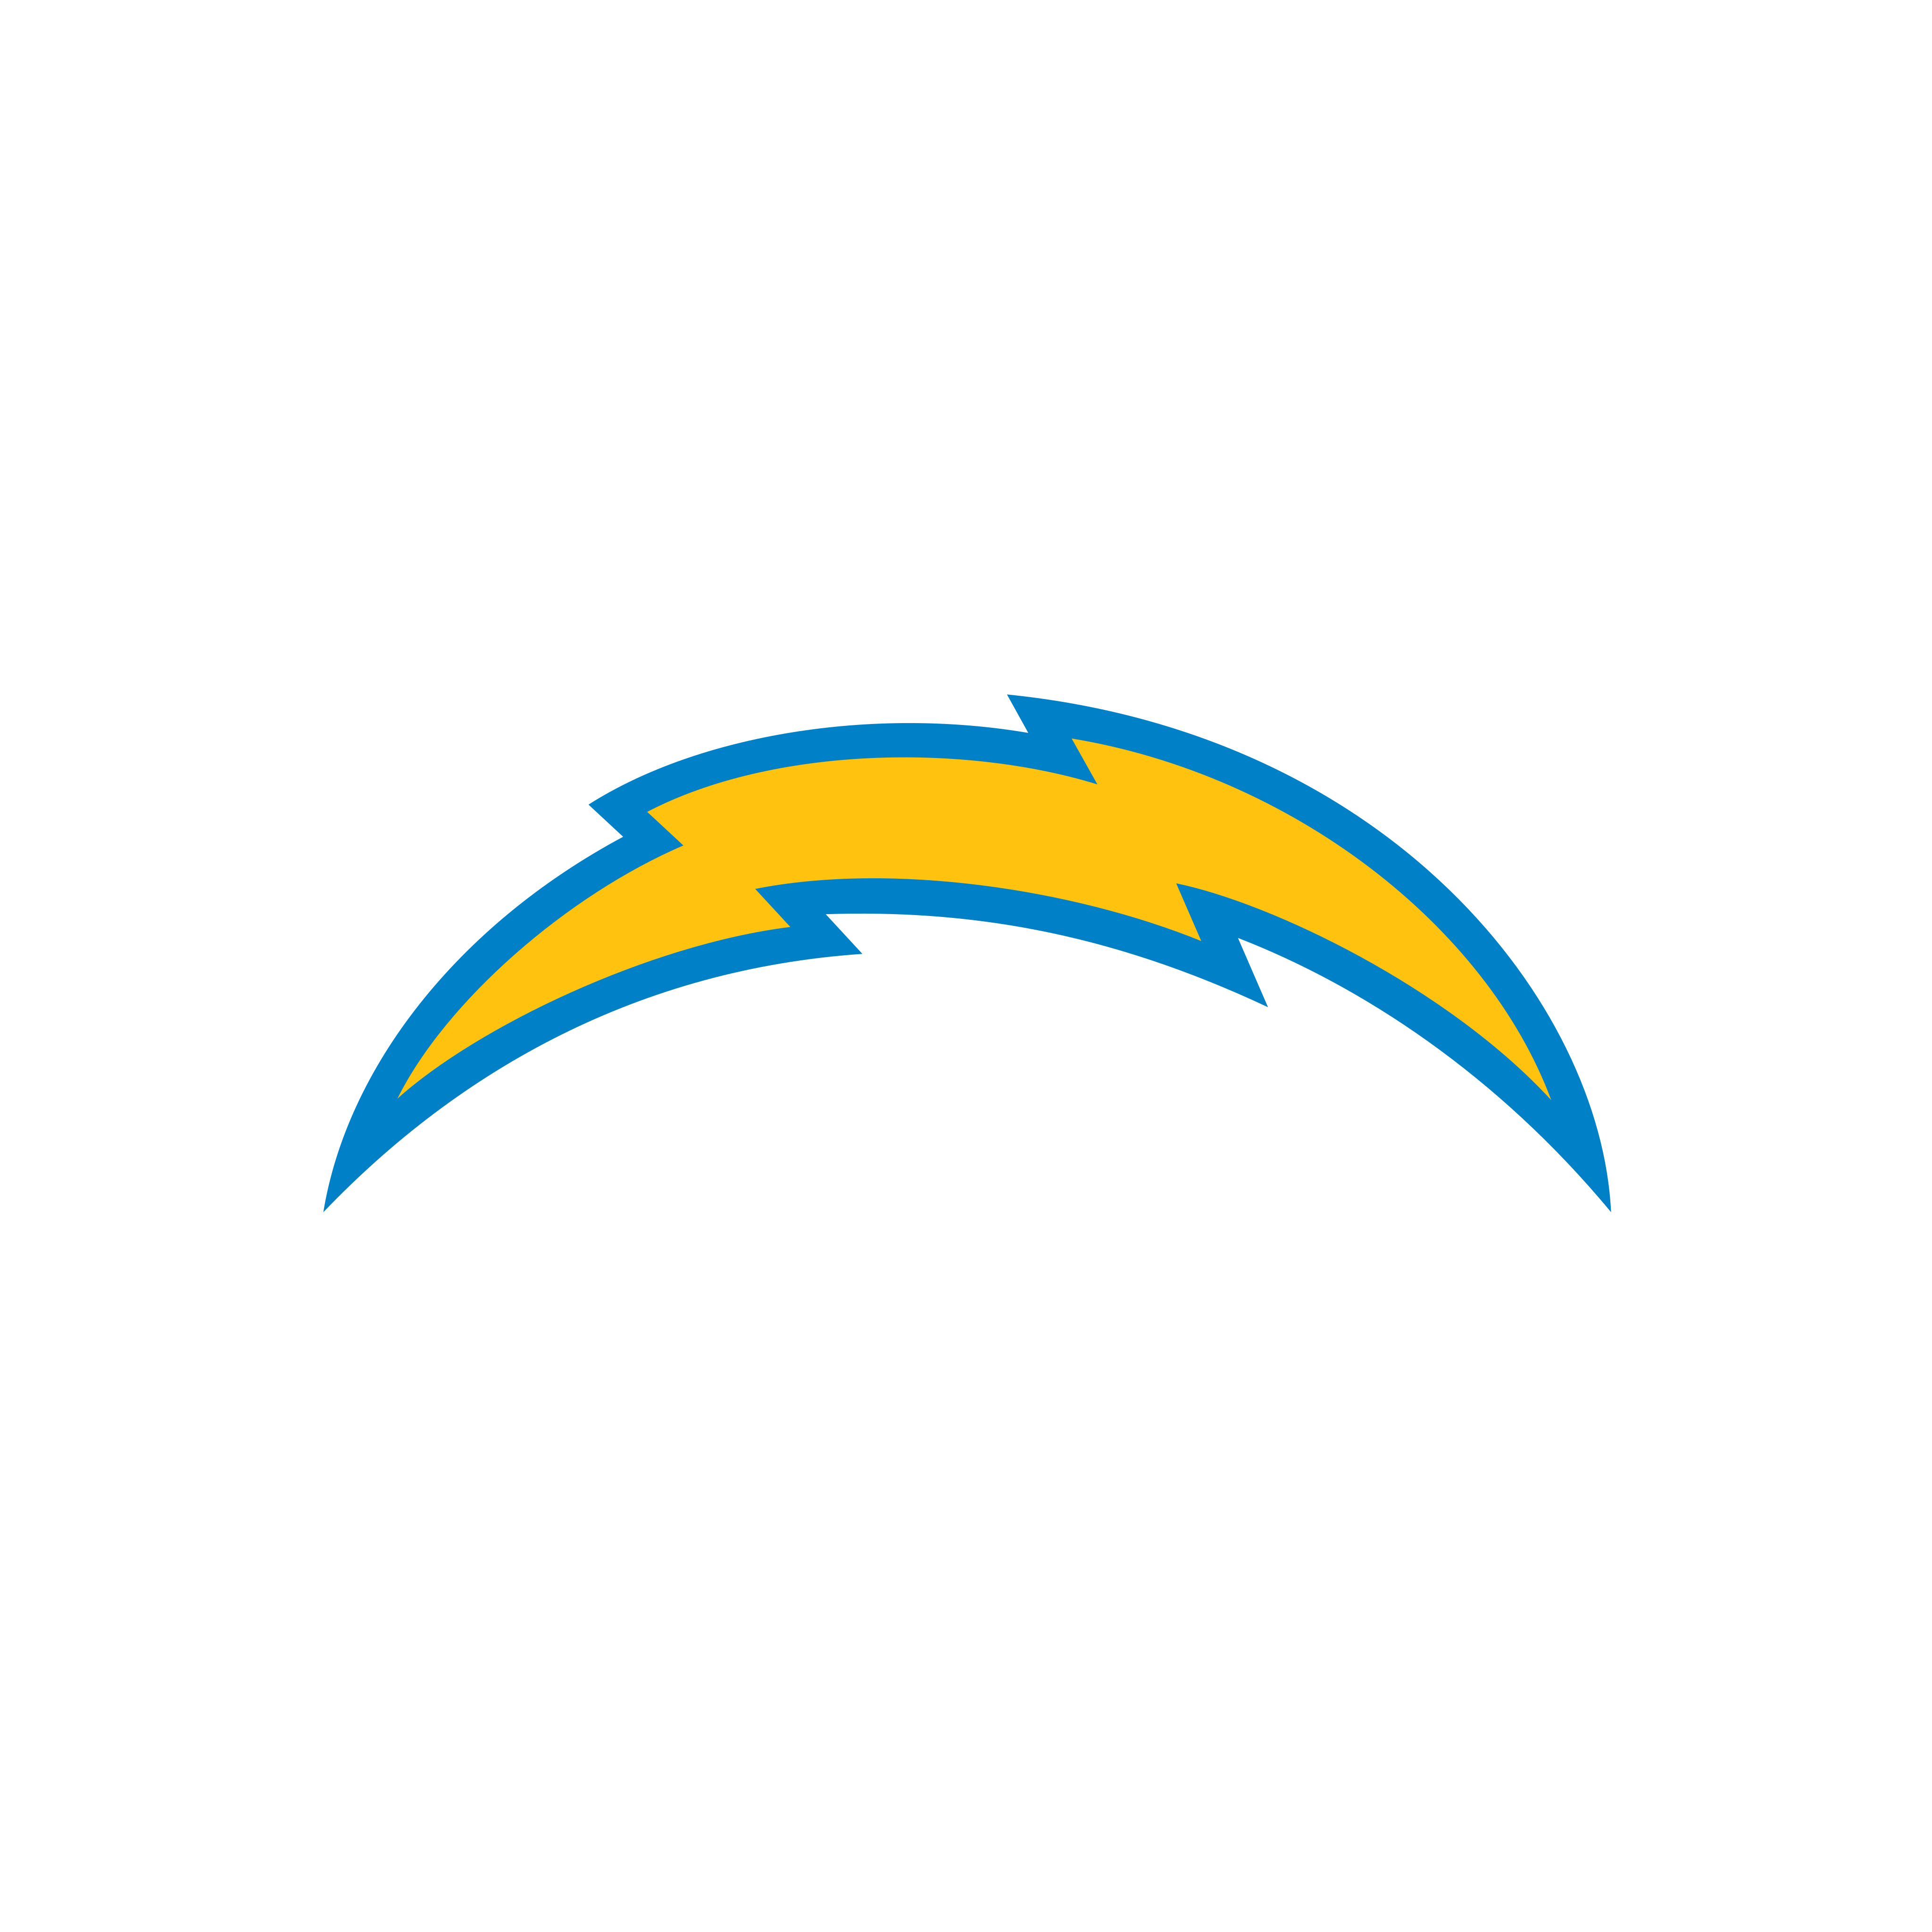 los angeles chargers logo 0 - Los Angeles Chargers Logo